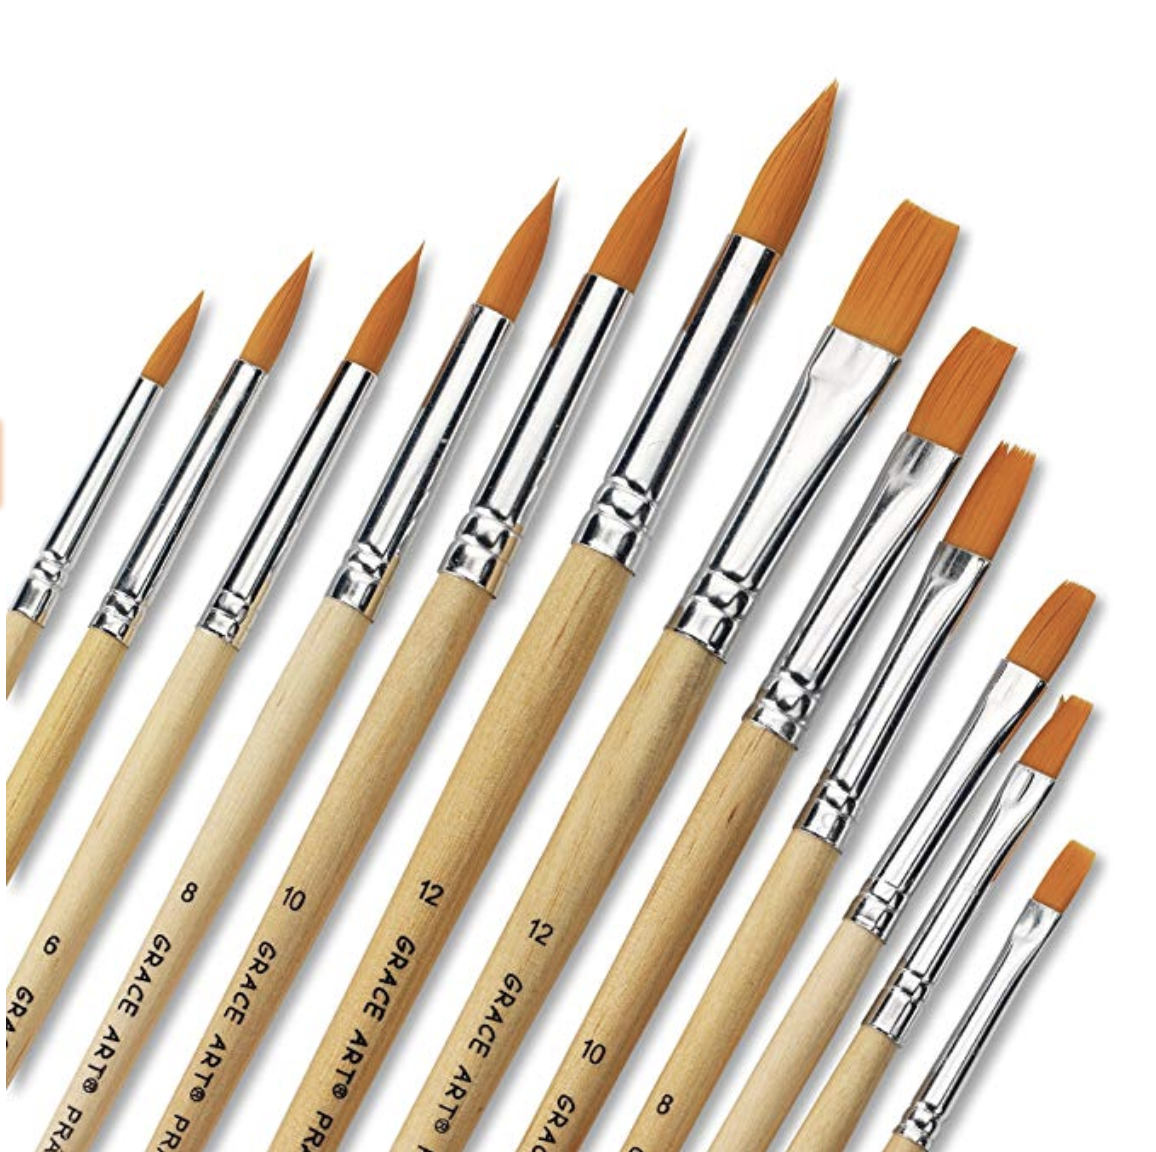 Grace Art Water Color Brush Set WS12 by Grace Art, $7.50